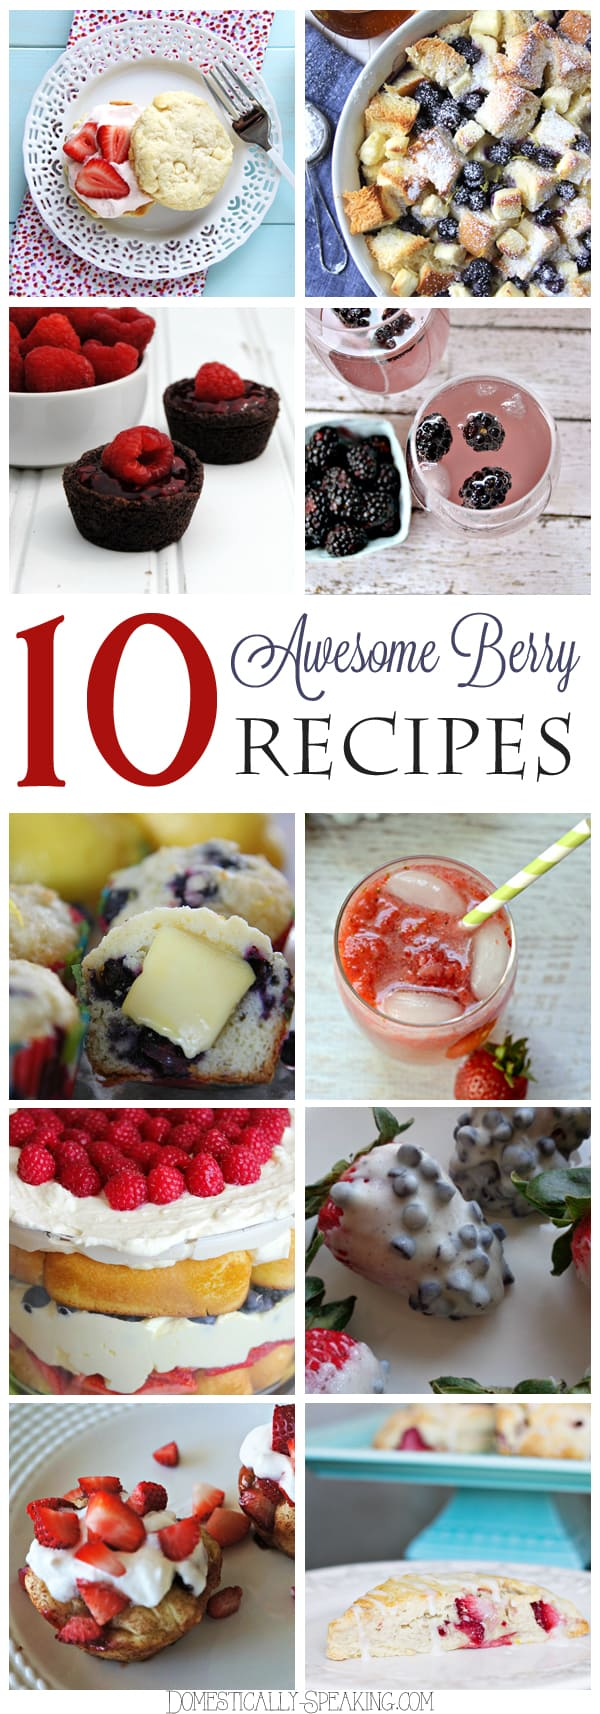 10 Awesome Berry Recipes